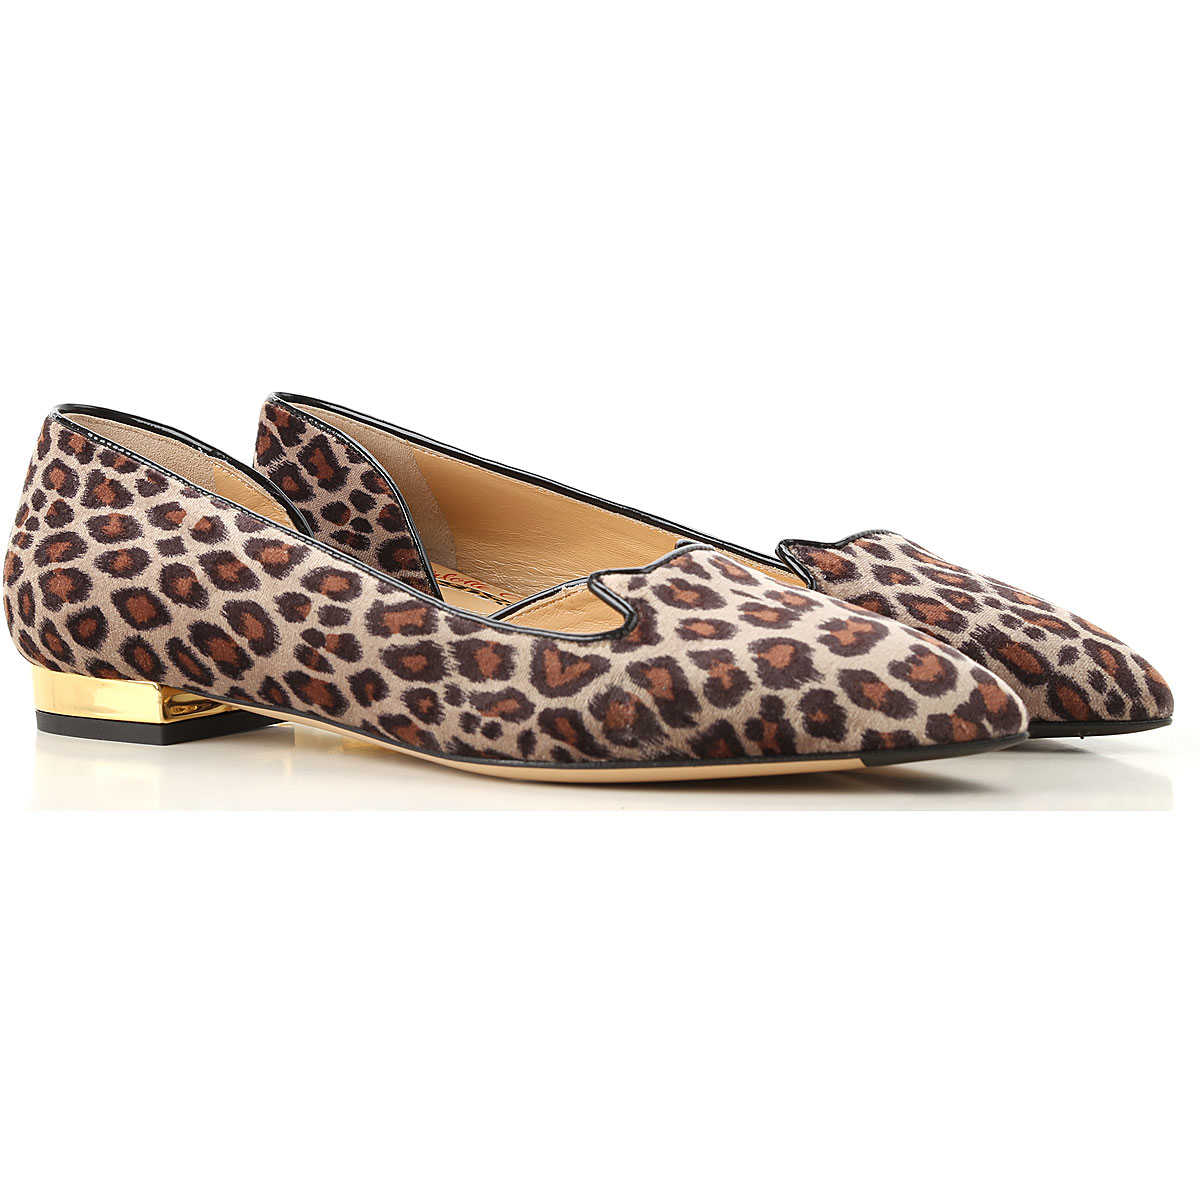 Charlotte Olympia Ballet Flats Ballerina Shoes for Women On Sale